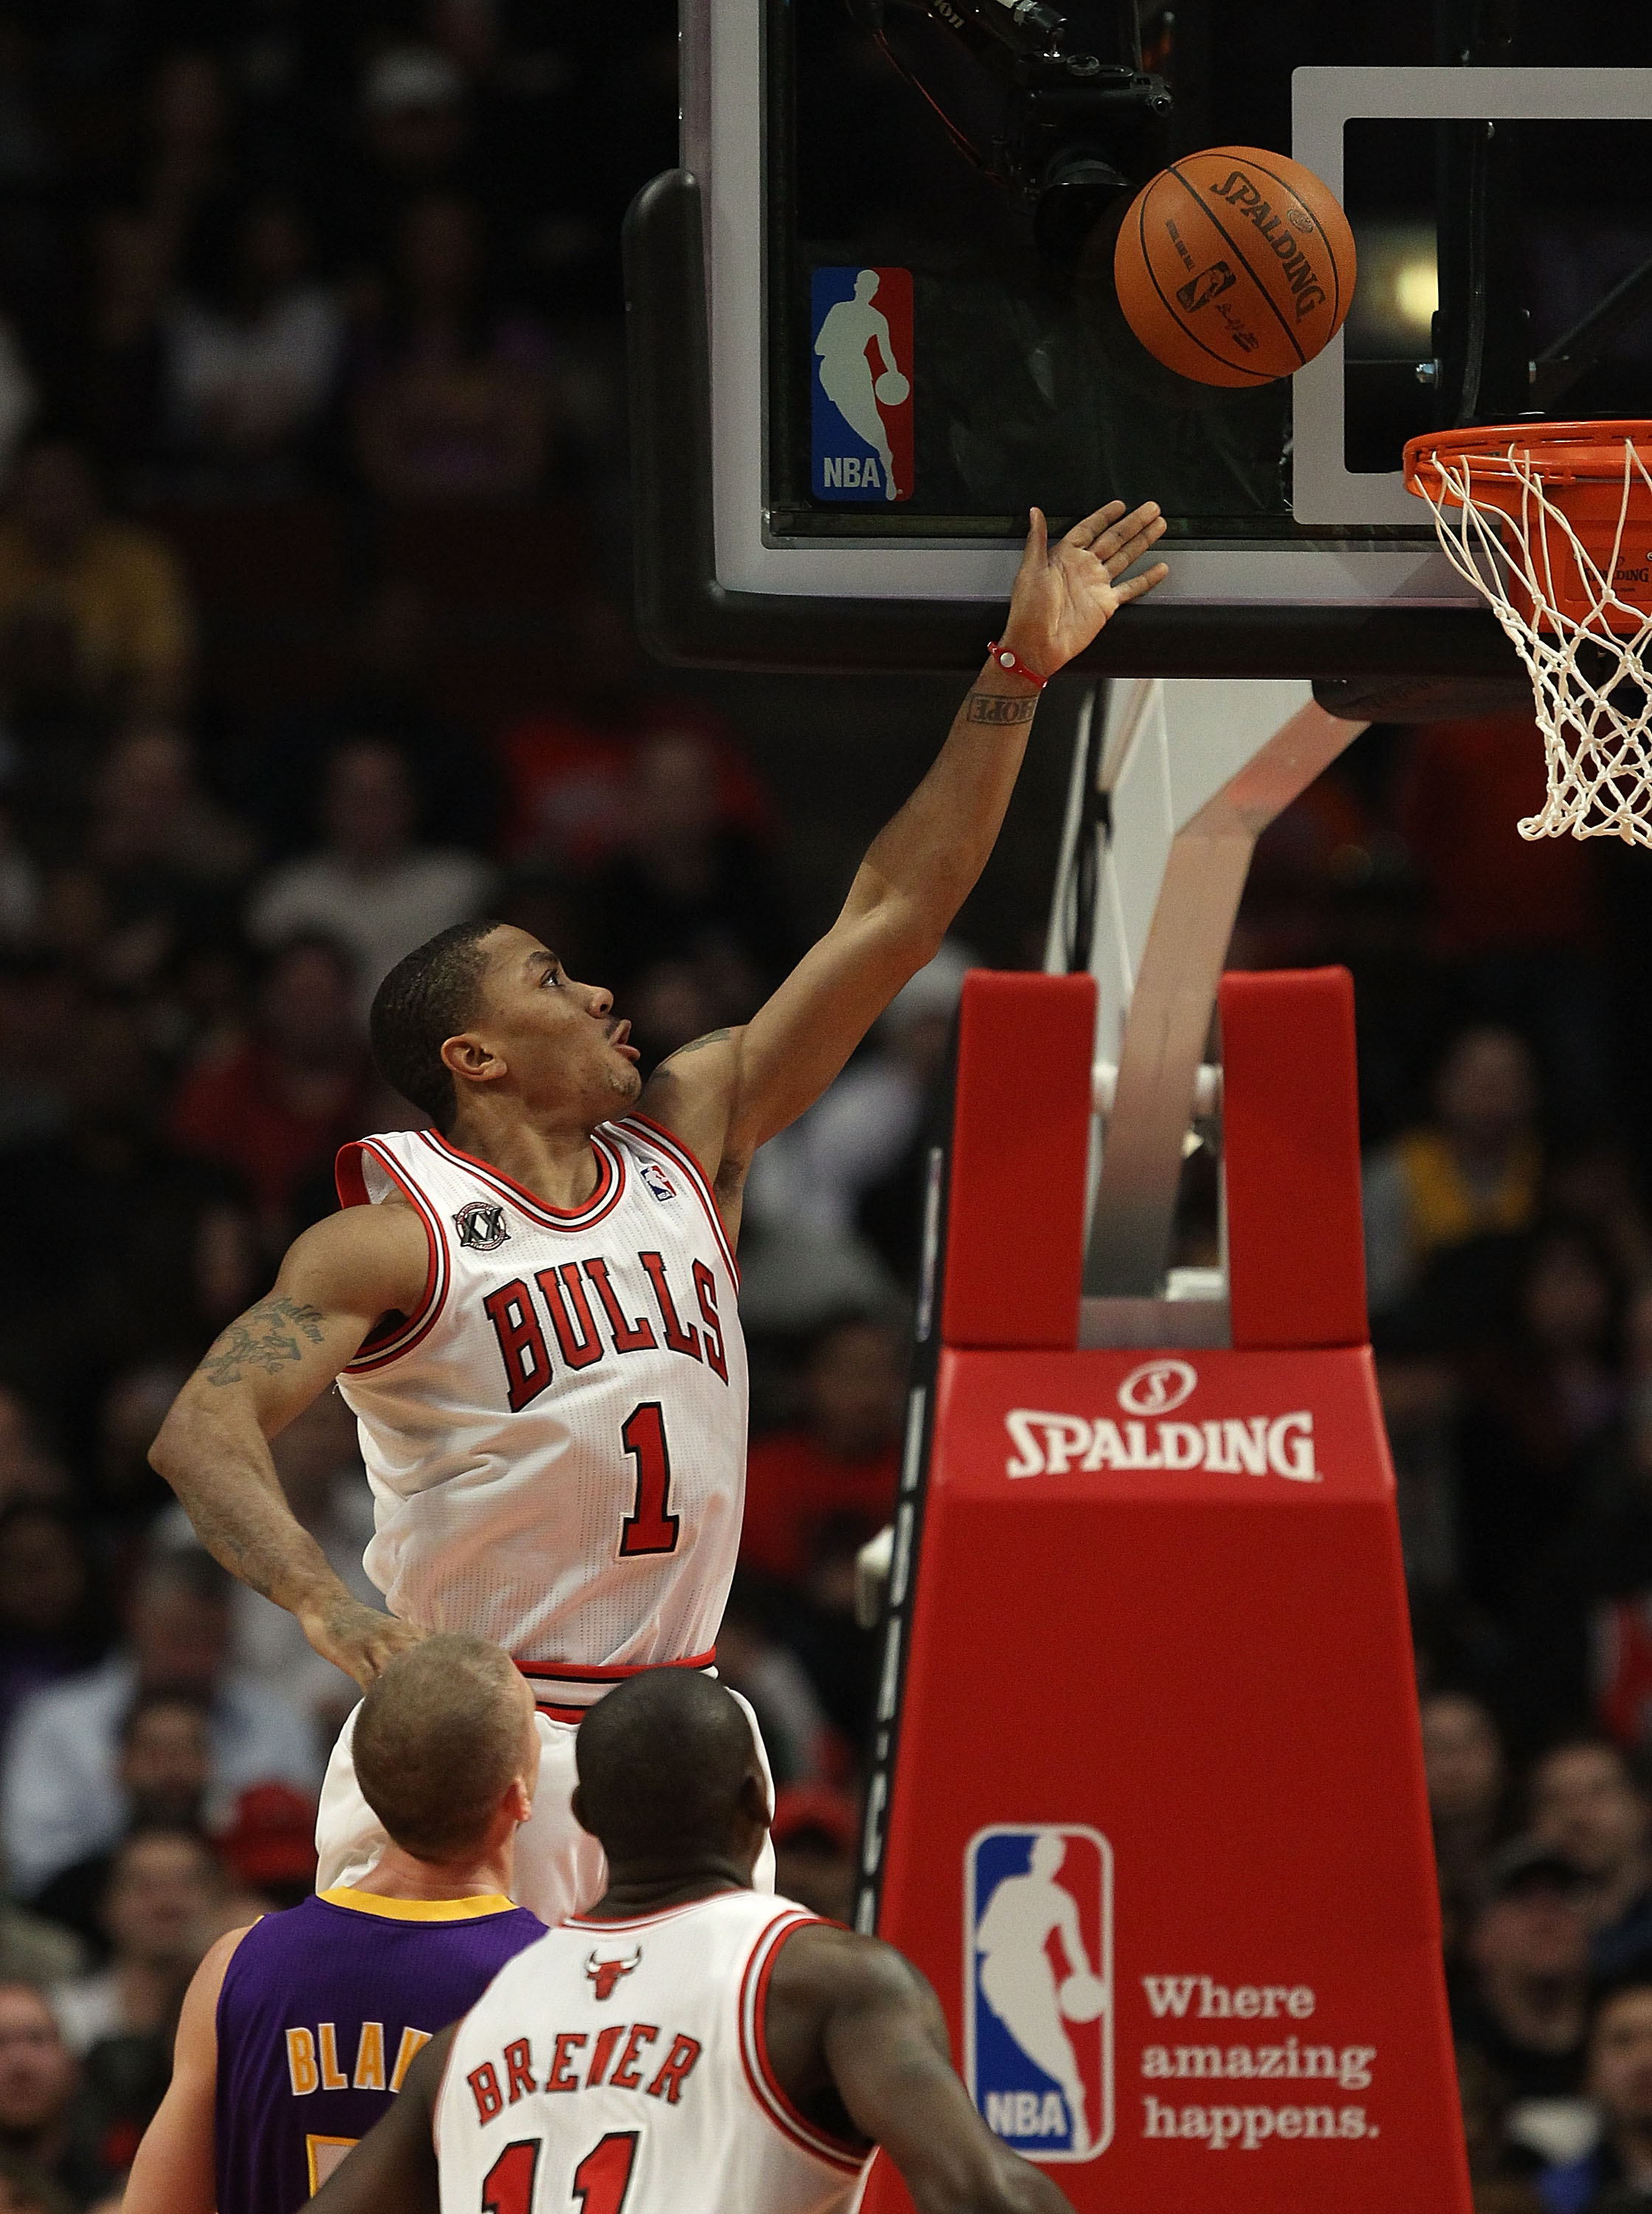 CHICAGO, IL - DECEMBER 10: Derrick Rose #1 of the Chicago Bulls goes up for a shot against the Los Angeles Lakers at the United Center on December 10, 2010 in Chicago, Illinois. NOTE TO USER: User expressly acknowledges and agrees that, by downloading and